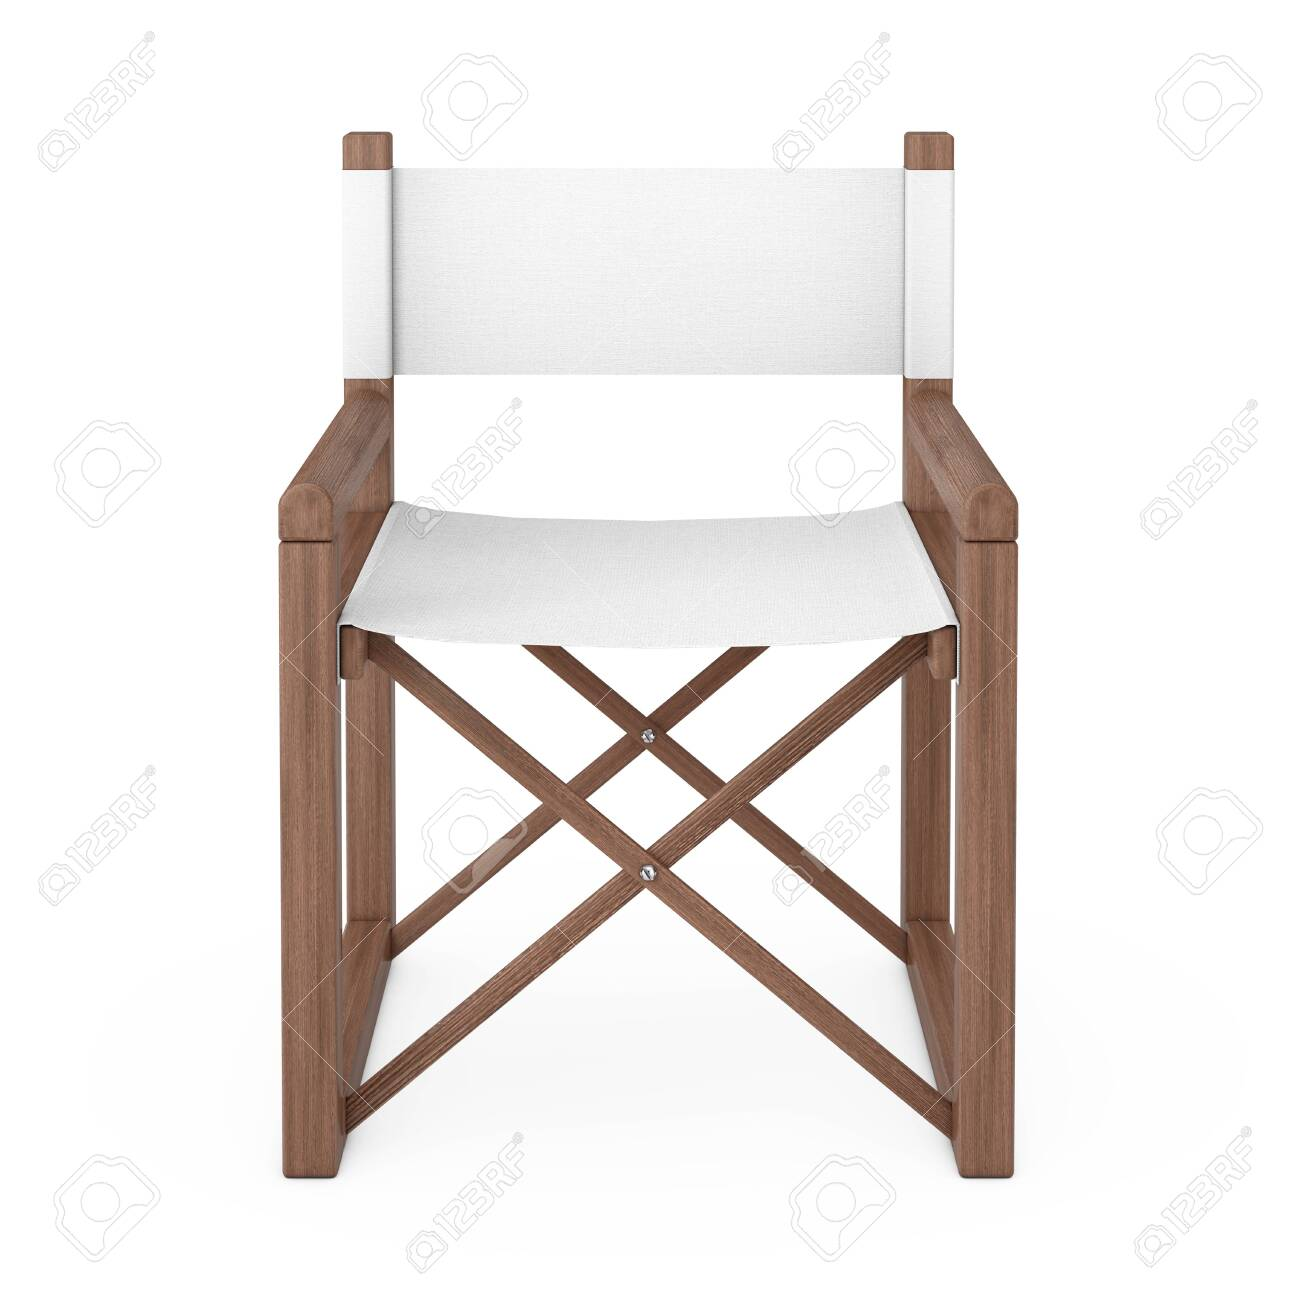 Modern Wooden Folding Director or Garden Chair on a white background...